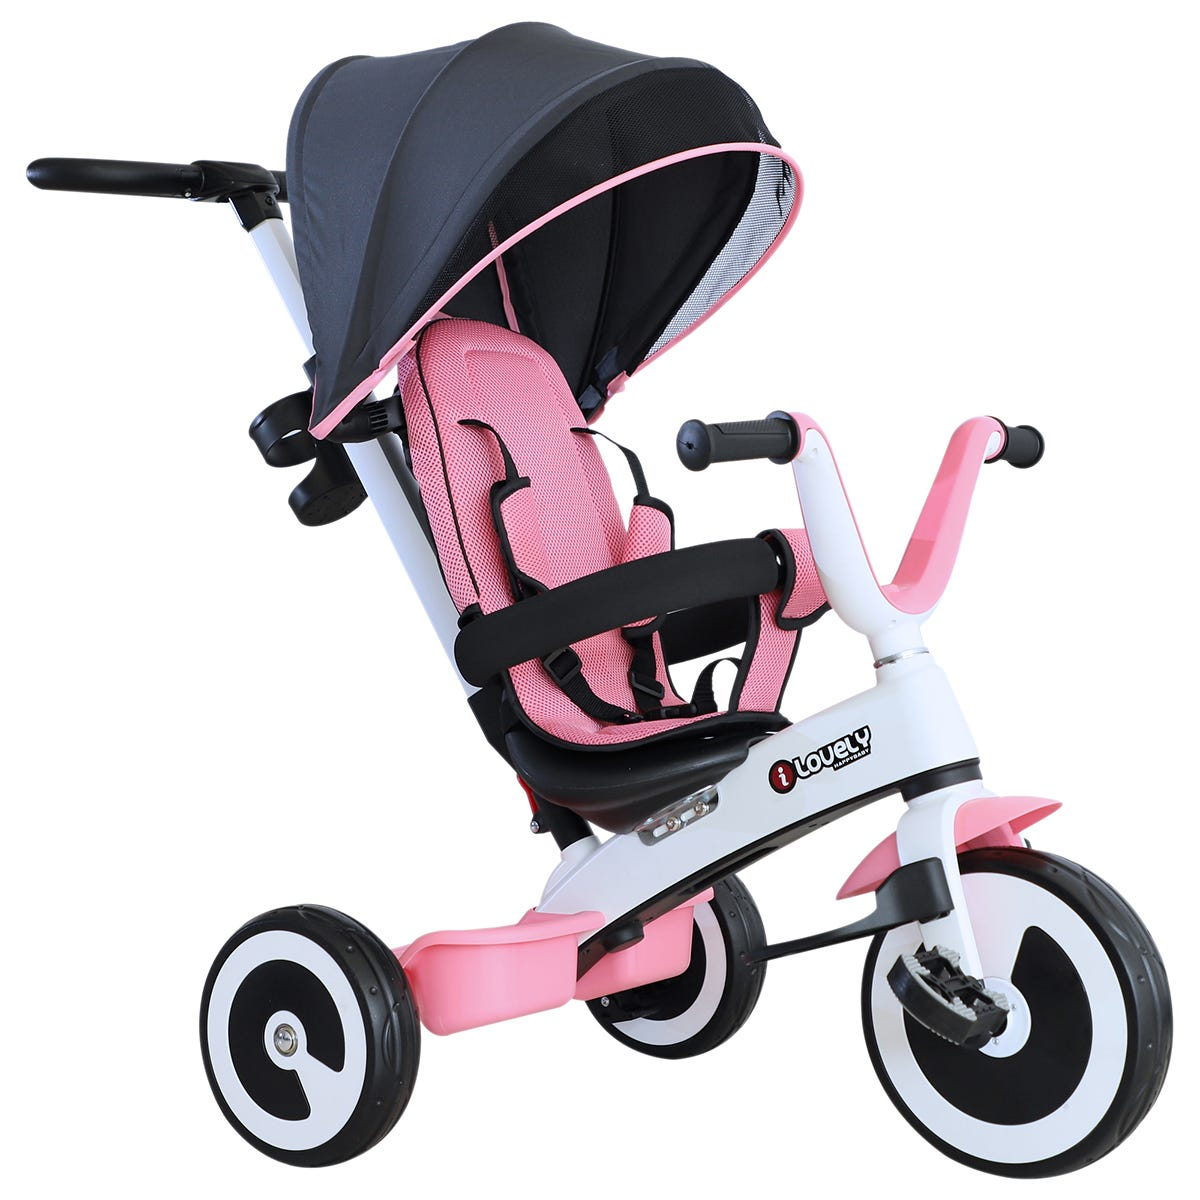 Reiten 4-in-1 Baby Tricycle & Stroller with Canopy - Pink